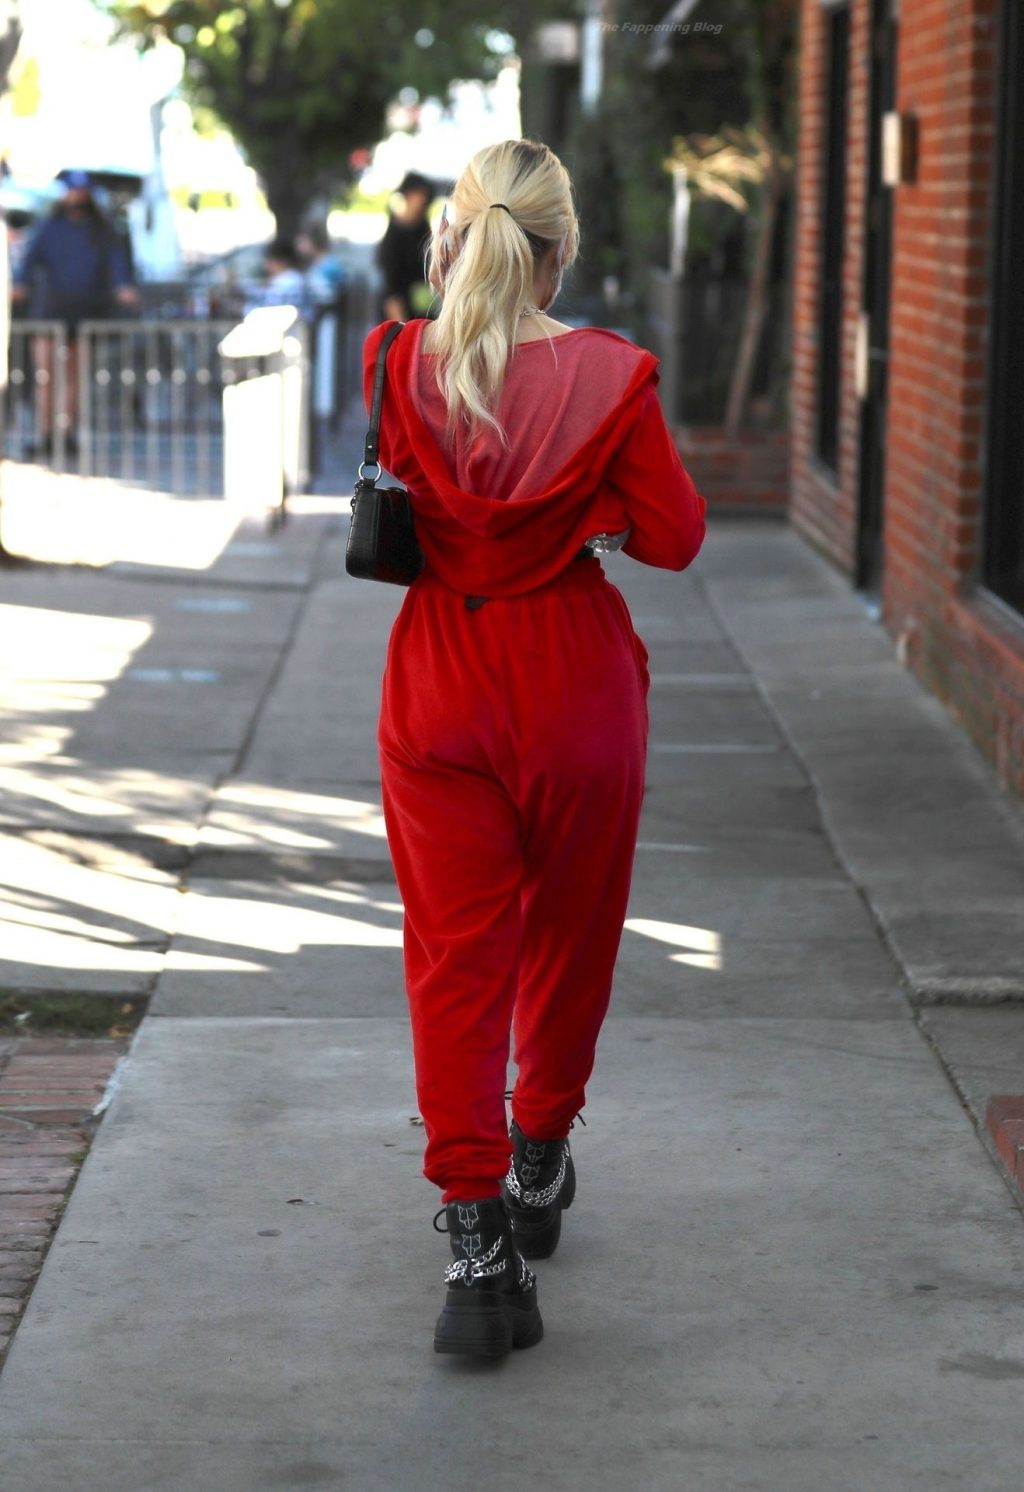 Lottie Moss is a Hottie in Red Putting on a Busty Display (11 Photos)